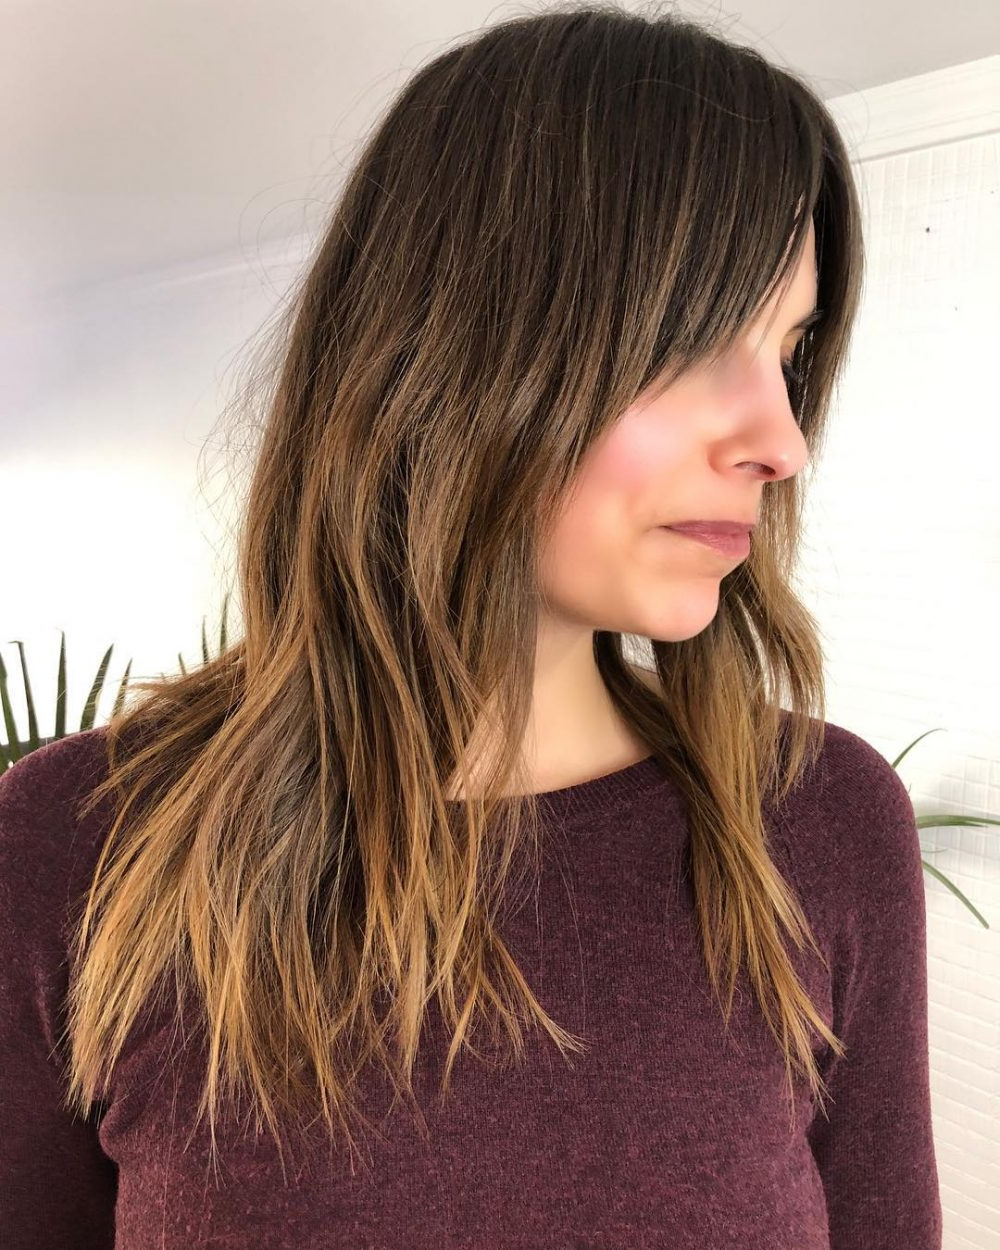 Newest Disconnected Brown Shag Long Hairstyles With Highlights With Long Shag Haircuts: 36 Examples For (View 18 of 20)